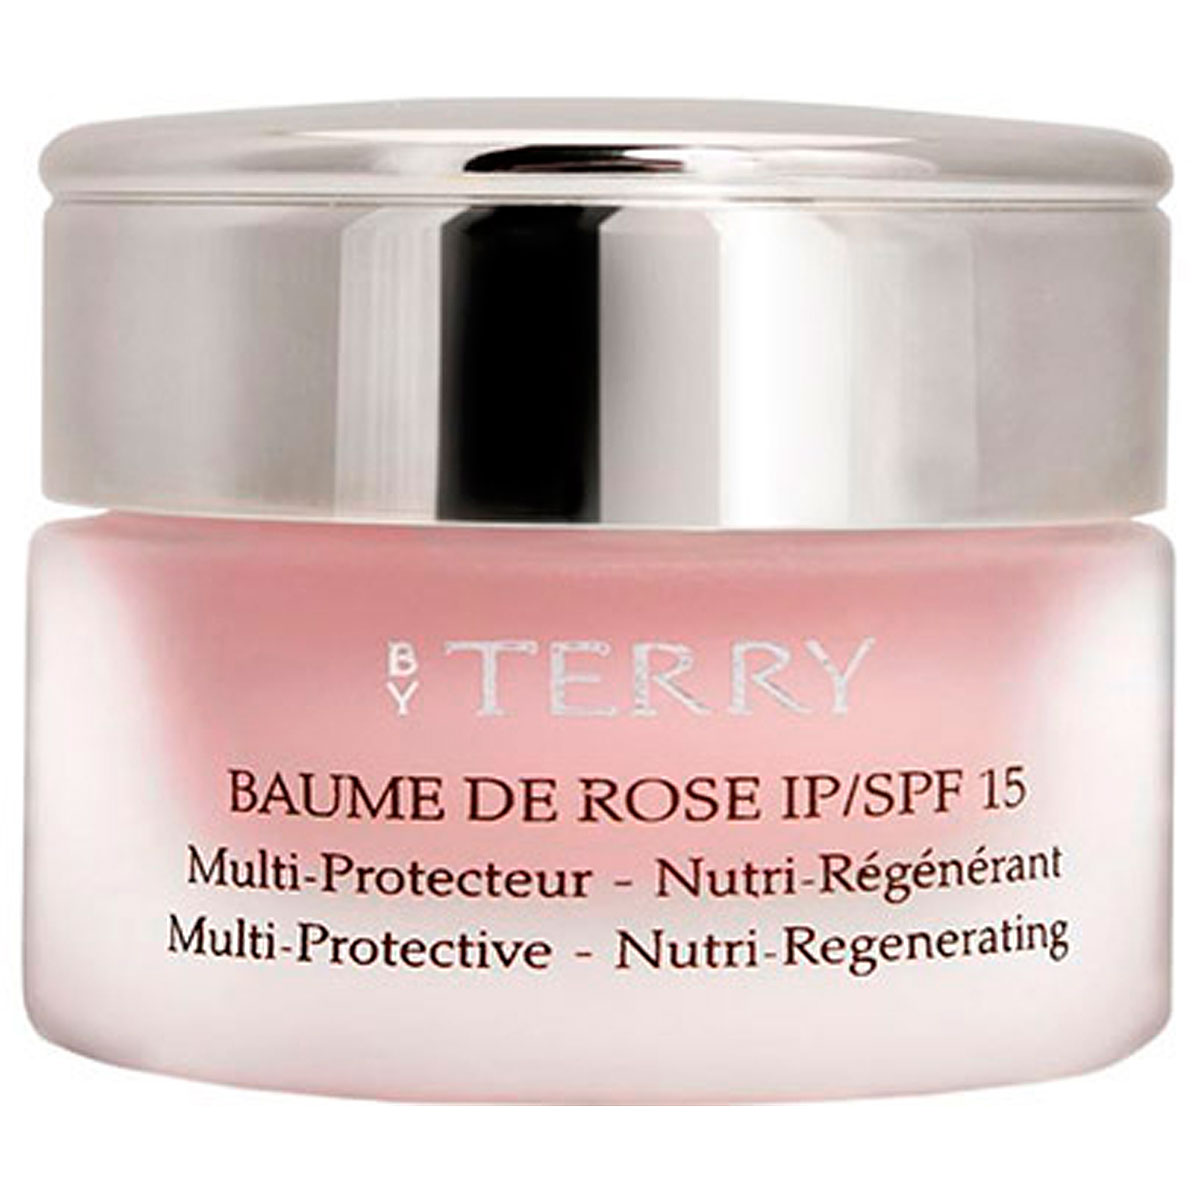 By Terry Makeup for Women, Baume De Rose - Lip Care Spf 15 - 10 Gr, 2019, 10 gr